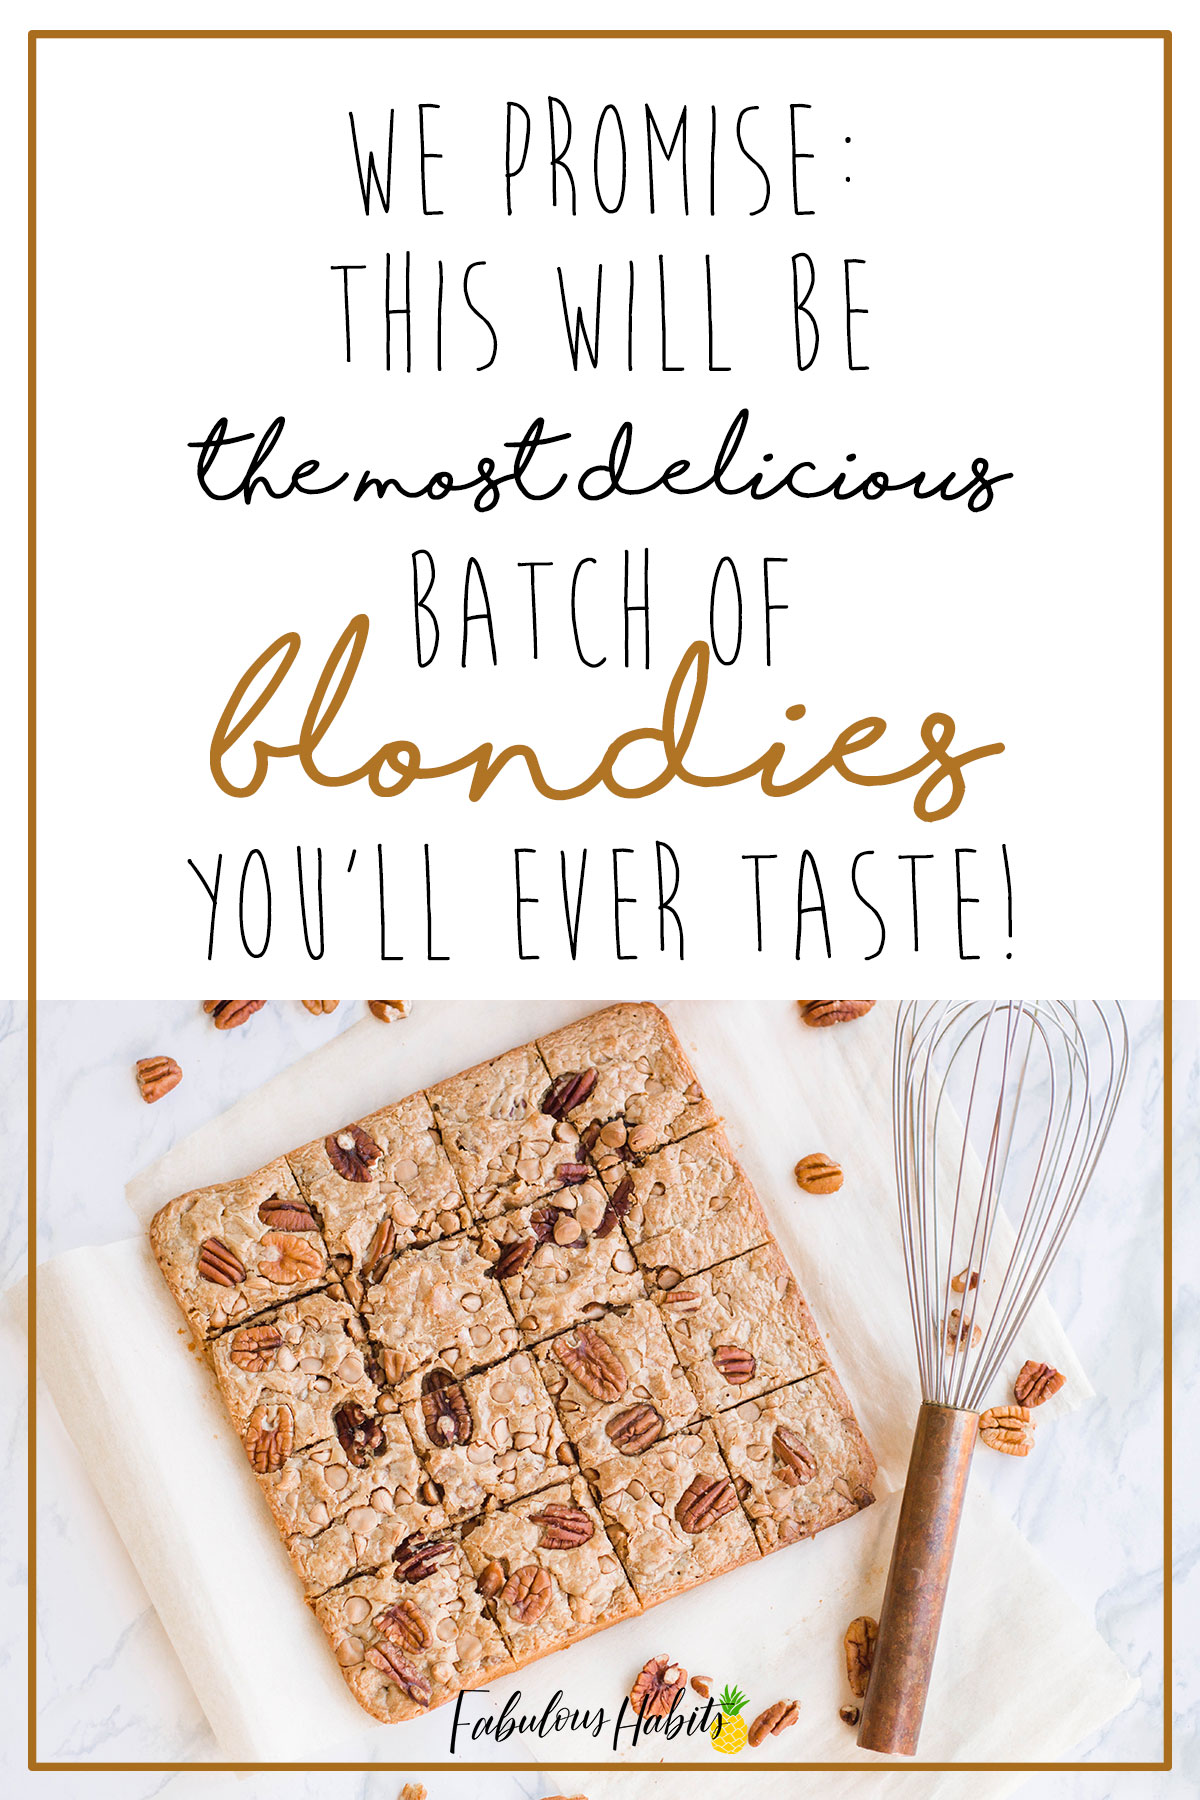 The best blondies recipe you'll ever try... promise! We are beaming with pride with how perfect our Caramel Pecan Blondies turned out! #blondiebrownies